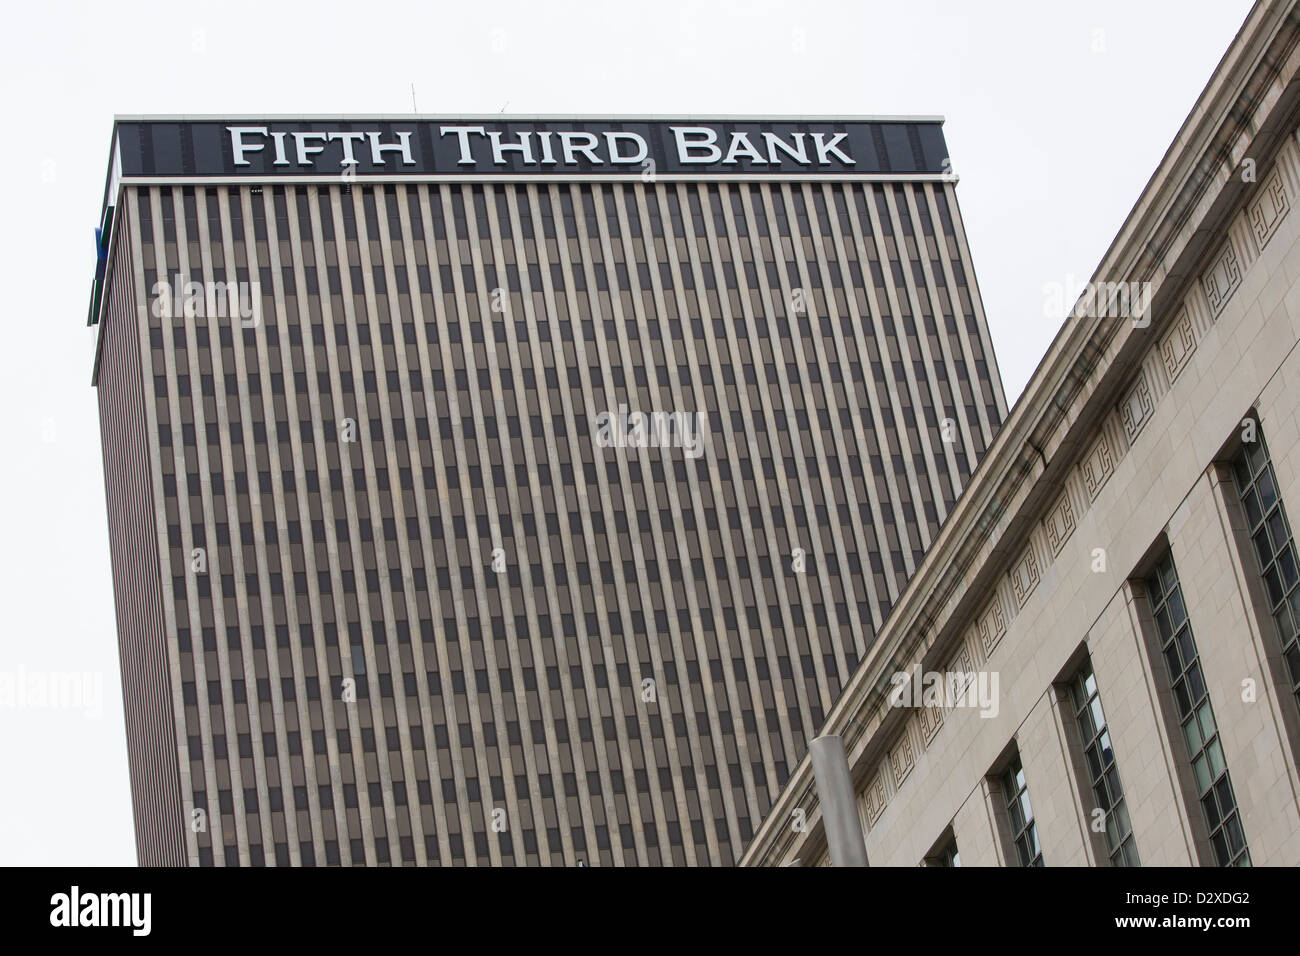 The headquarters of Fifth Third Bank.  - Stock Image